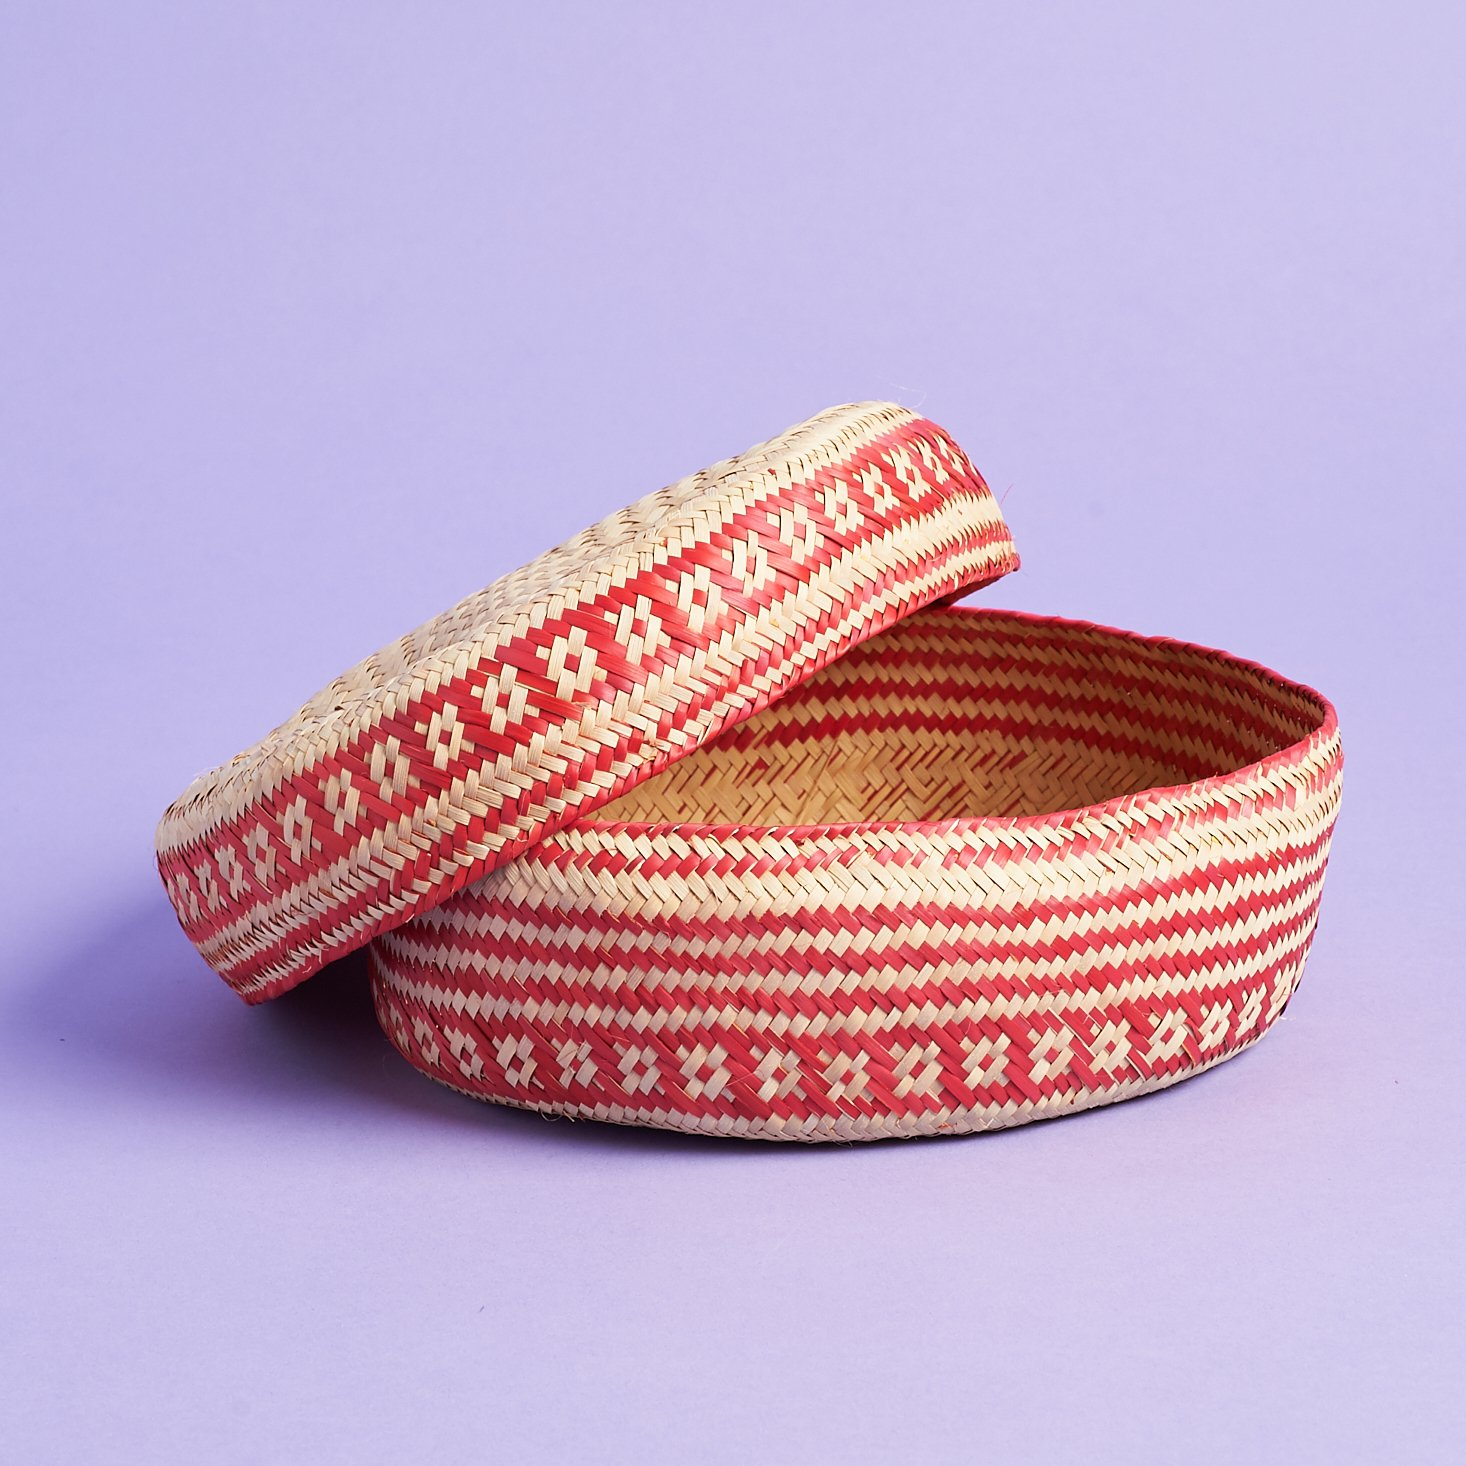 red and natural colored woven basket